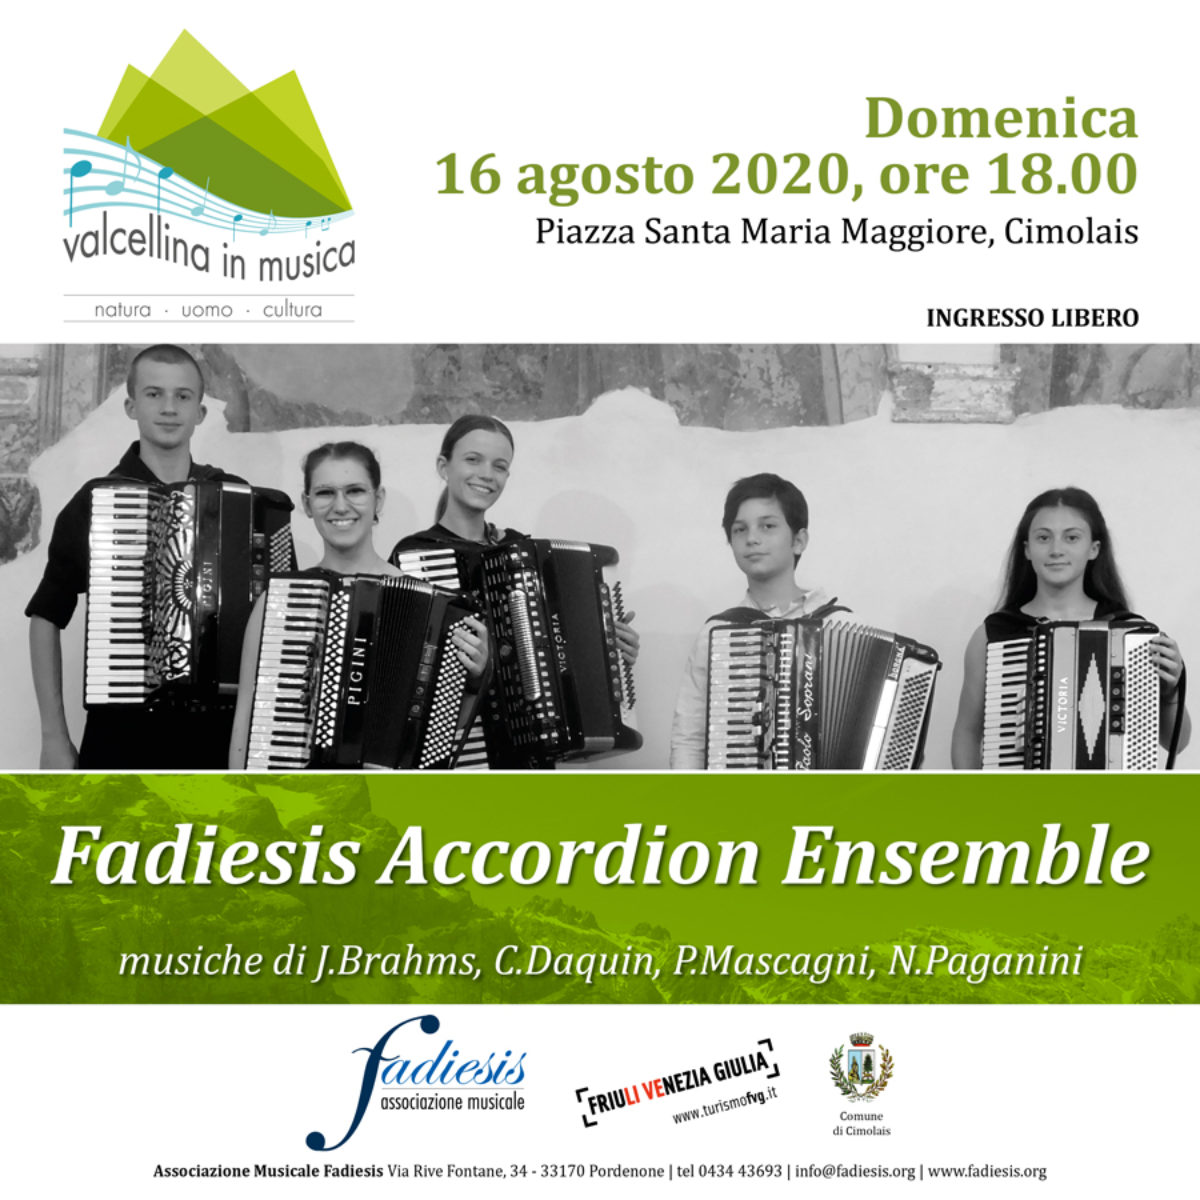 Fadiesis Accordion Ensemble